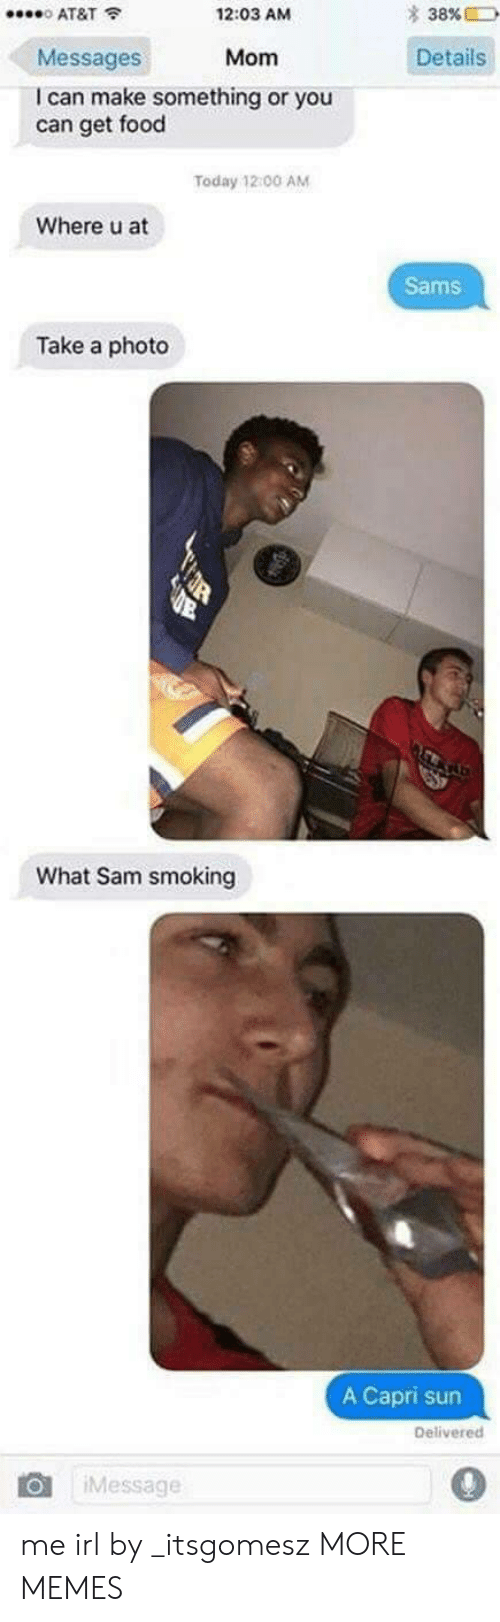 Dank, Food, and Memes: * 38%  0 AT&T  Messages  I can make something or you  12:03 AM  Mom Details  can get food  Today 12 00 AM  Where u at  Sams  Take a photo  What Sam smoking  A Capri sun  Delivered  Message  0 me irl by _itsgomesz MORE MEMES